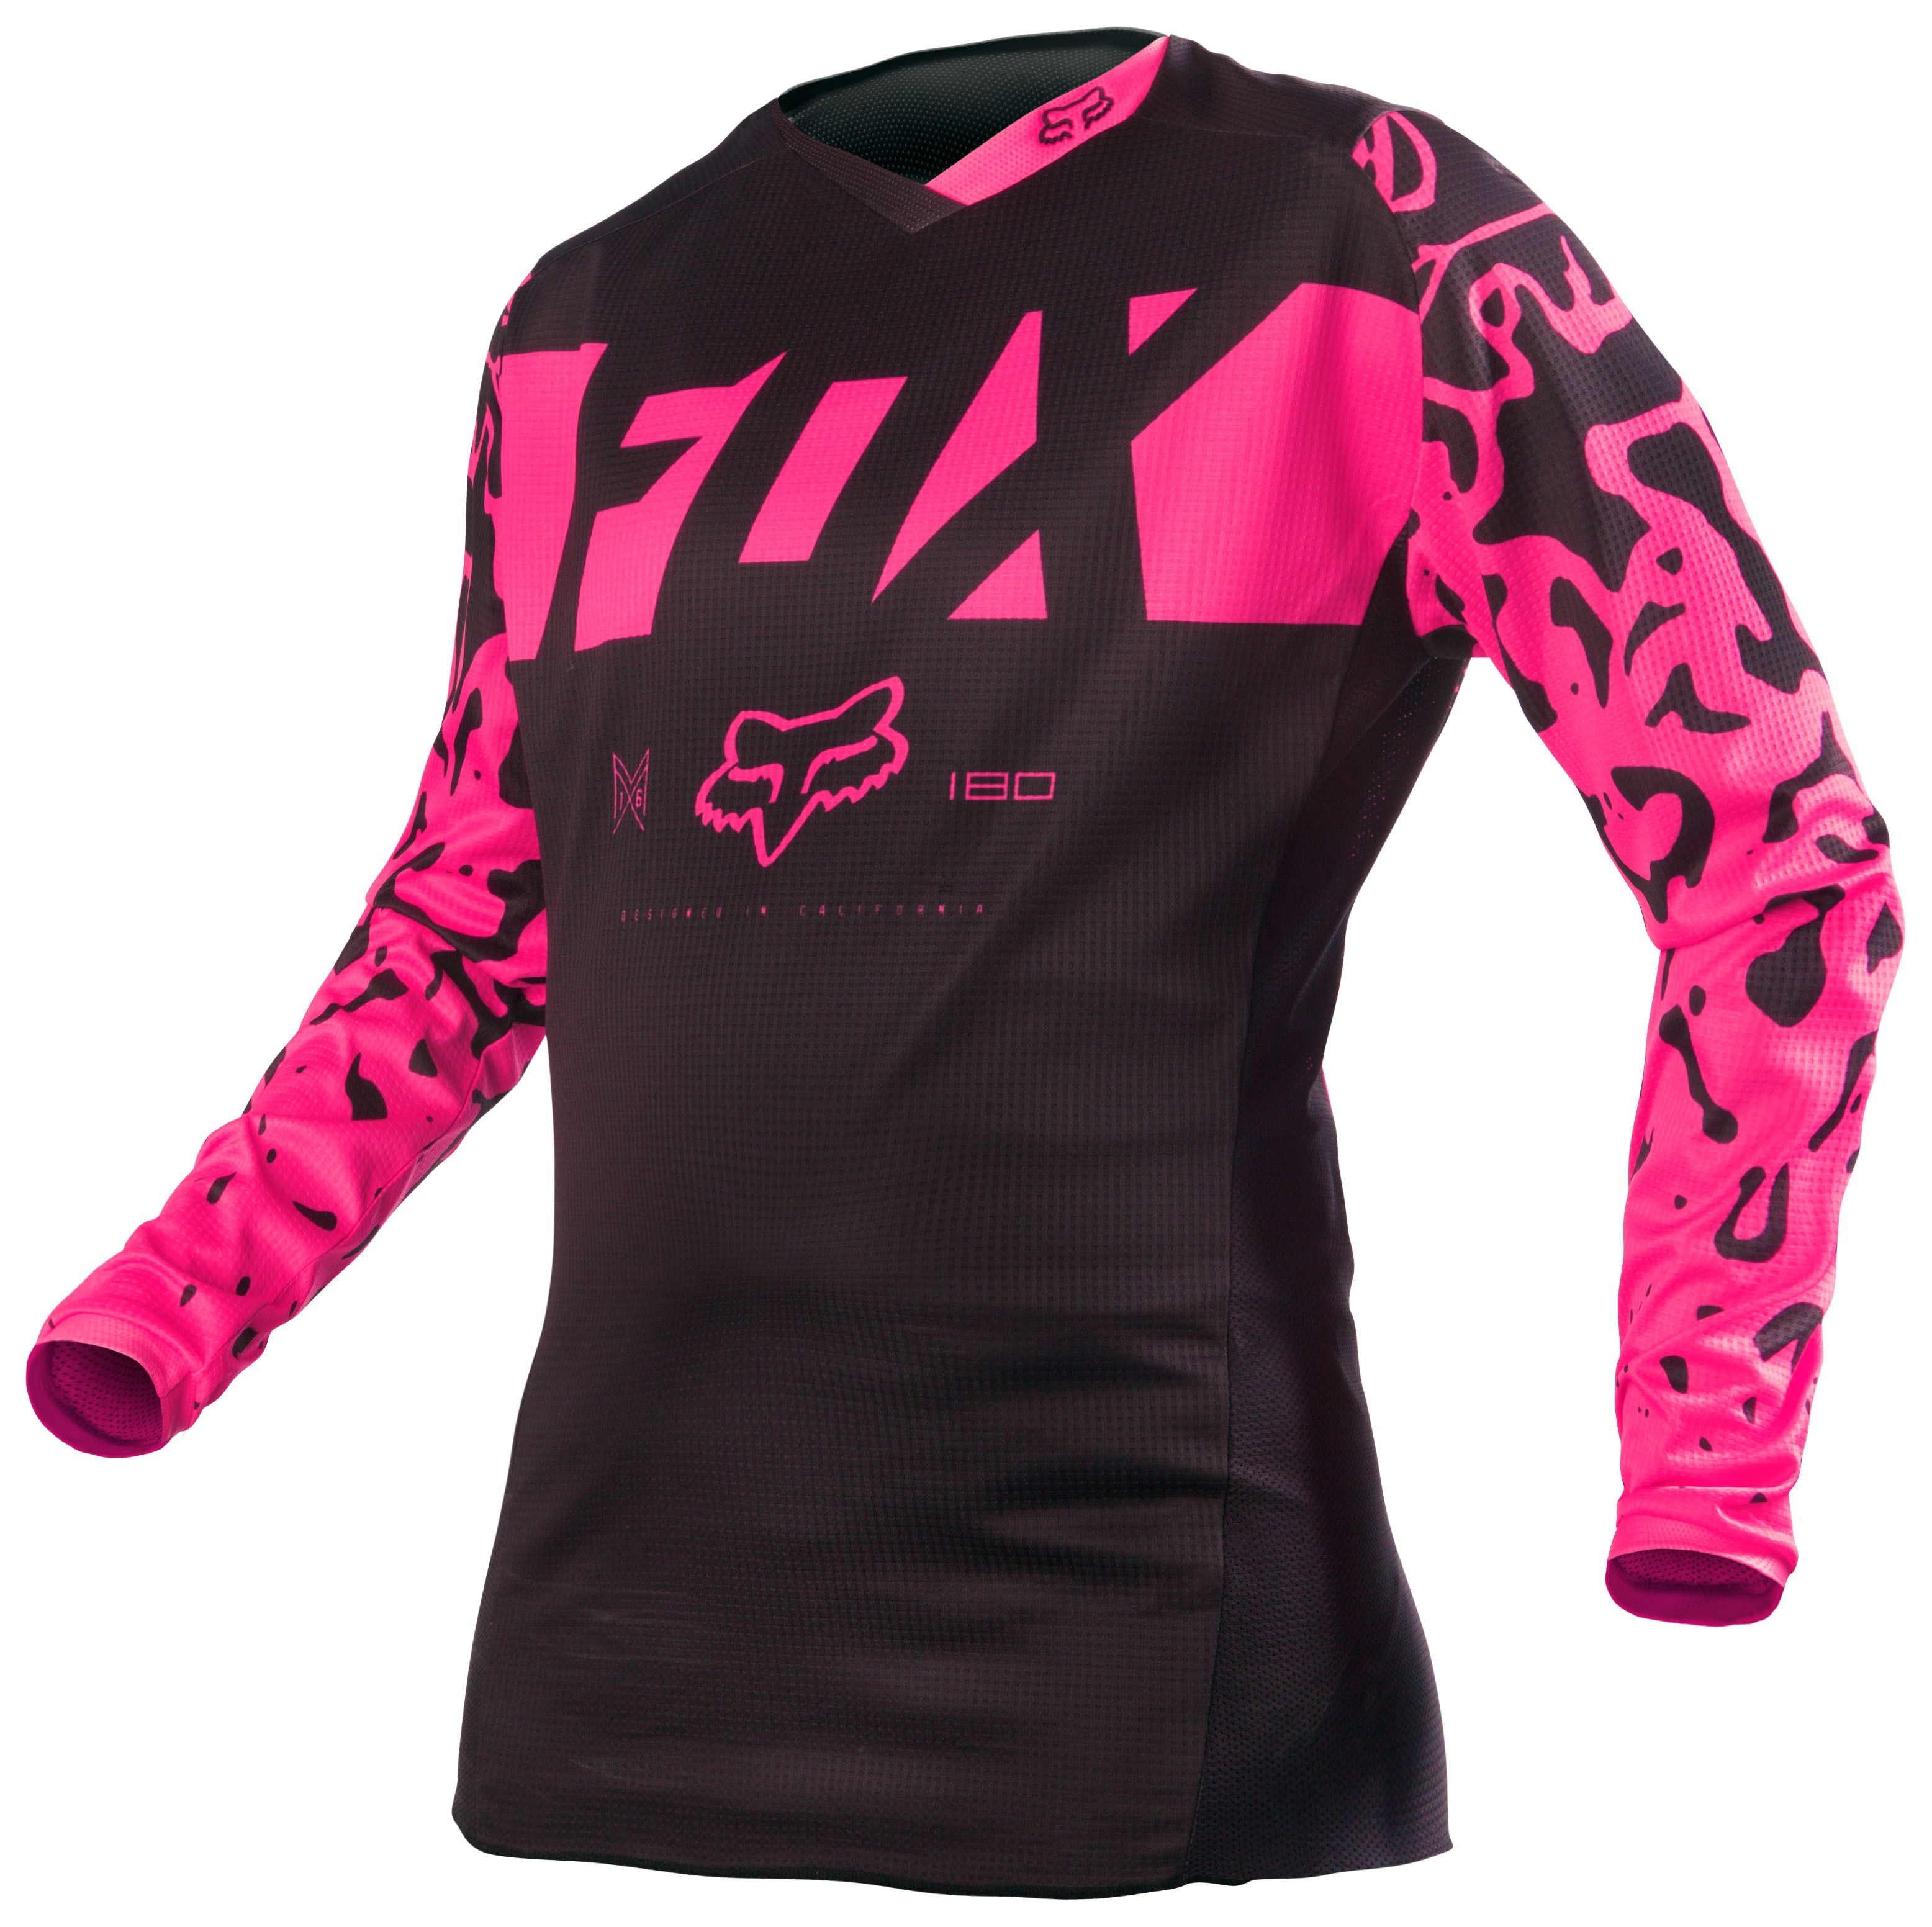 e44aaacb80f Fox Racing 180 Women s Jersey  Size XS Only